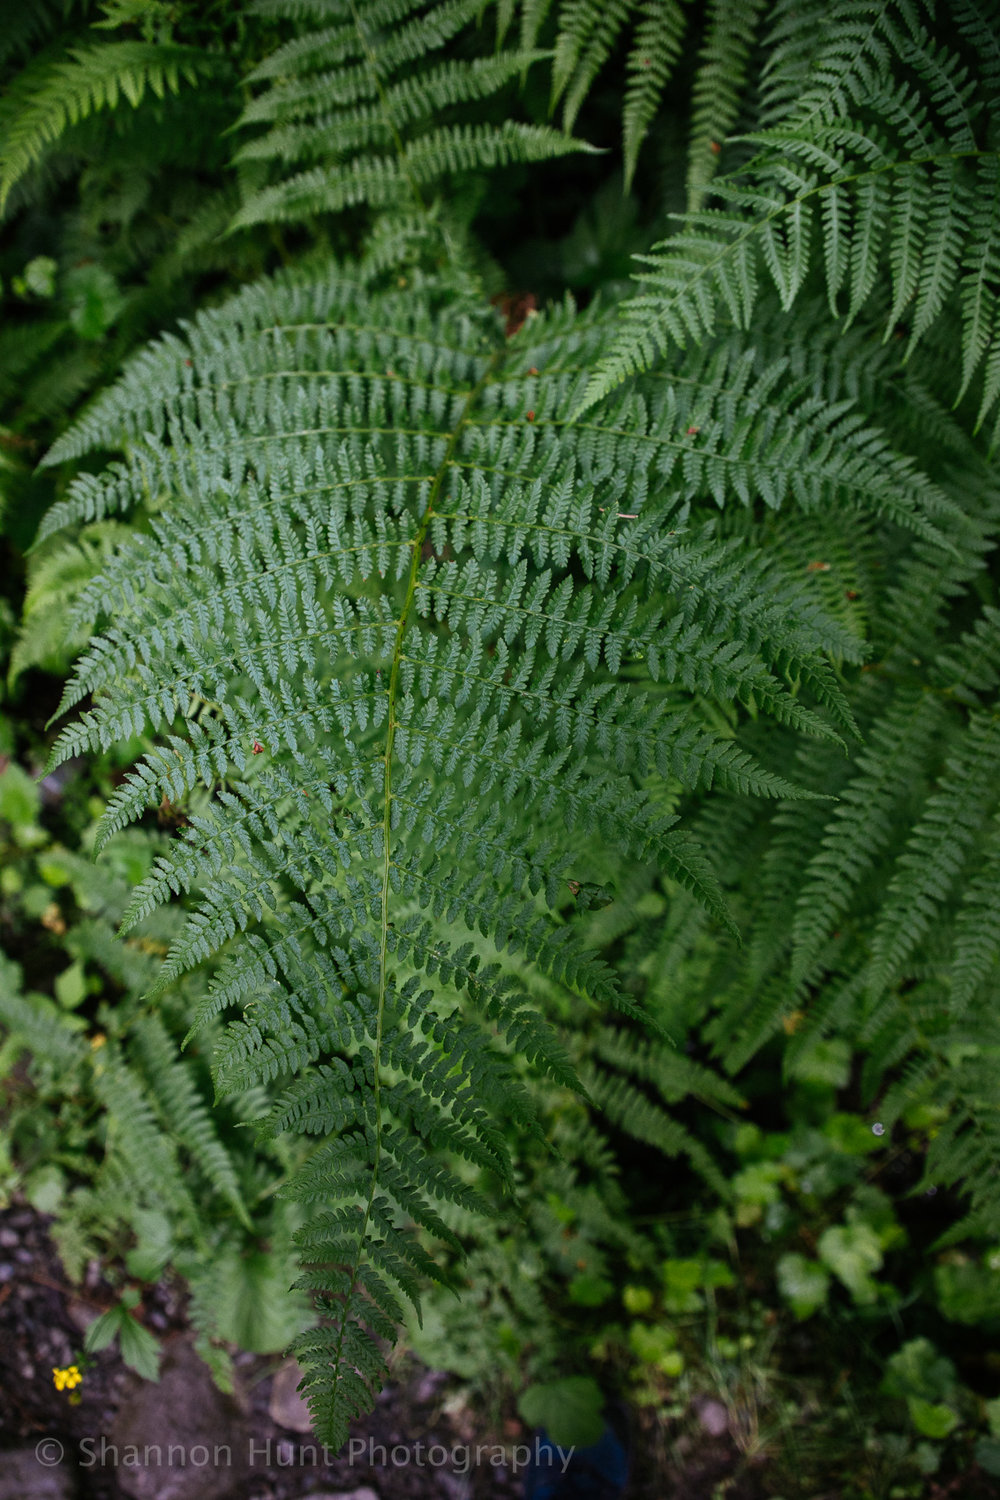 I've had a fascination with ferns since I was a kid.